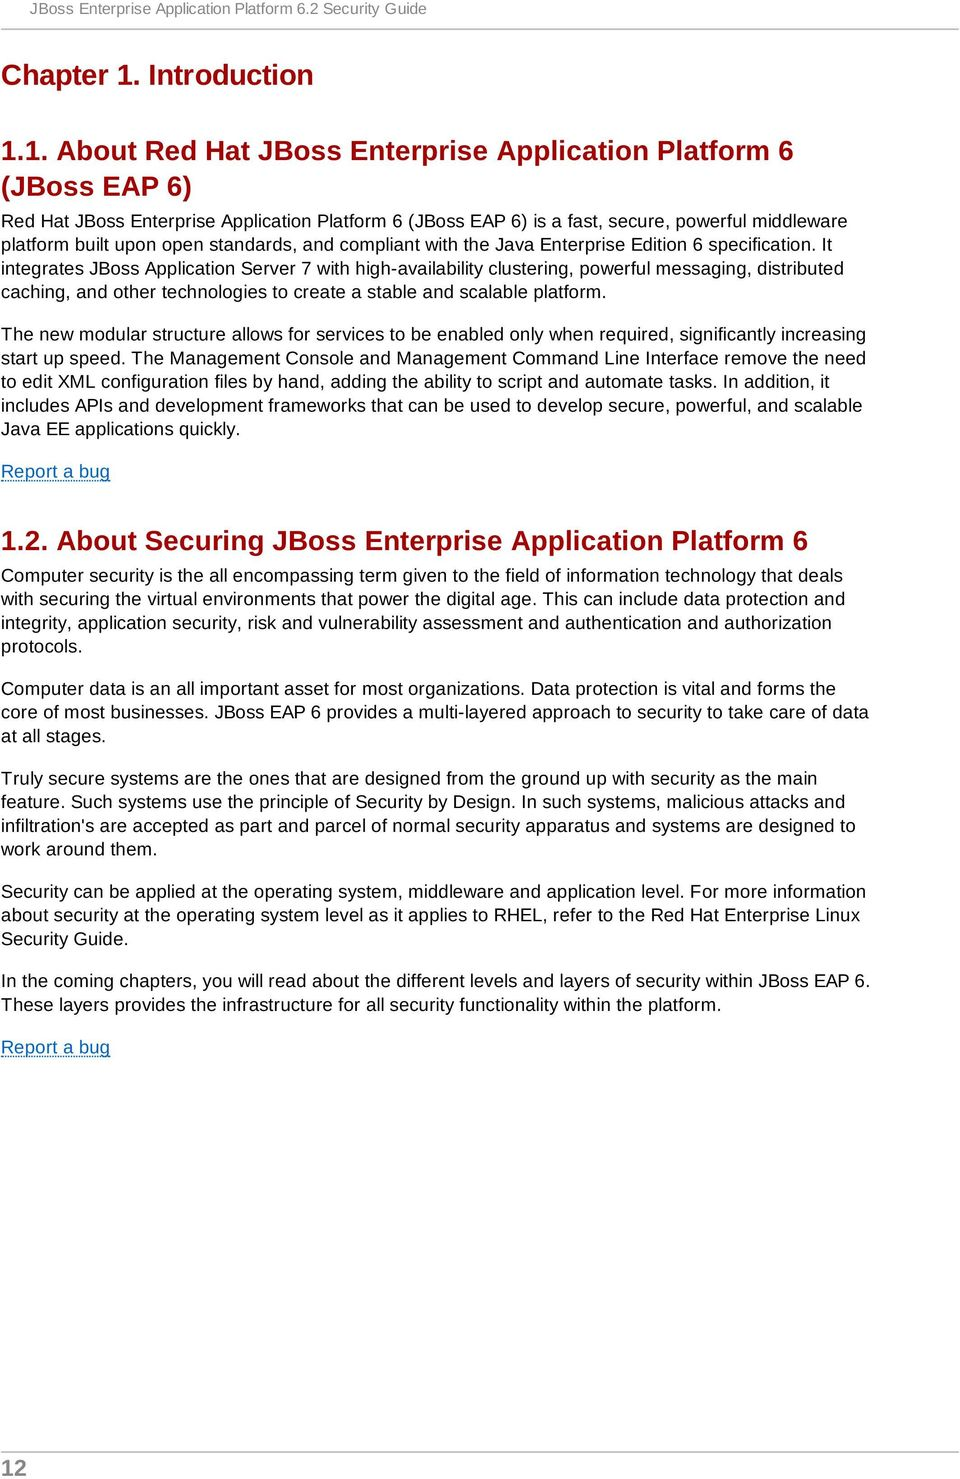 JBoss Enterprise Application Platform 6 2 Security Guide - PDF